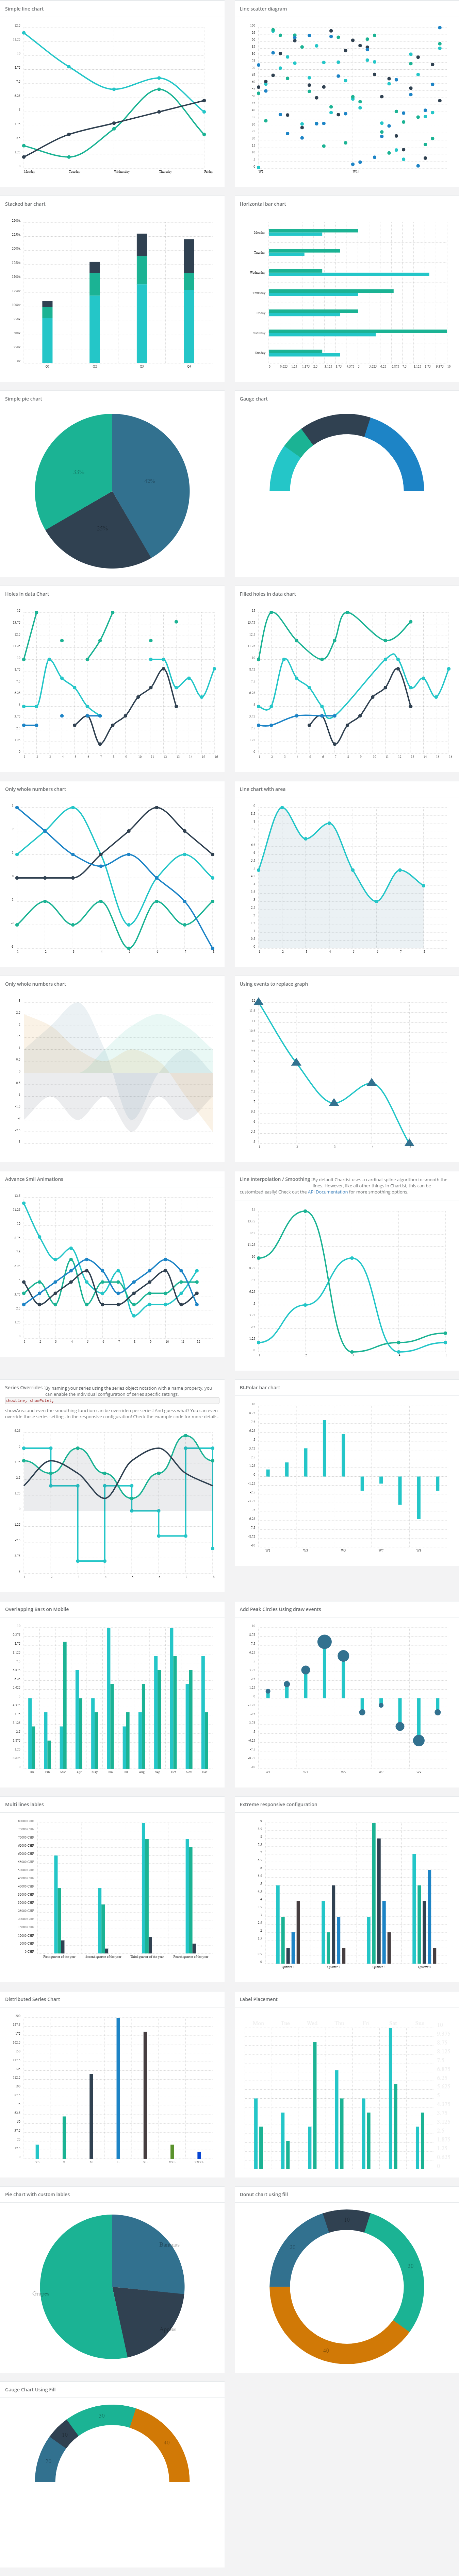 Responsive Ready to Use Charts - Finecharts - 2